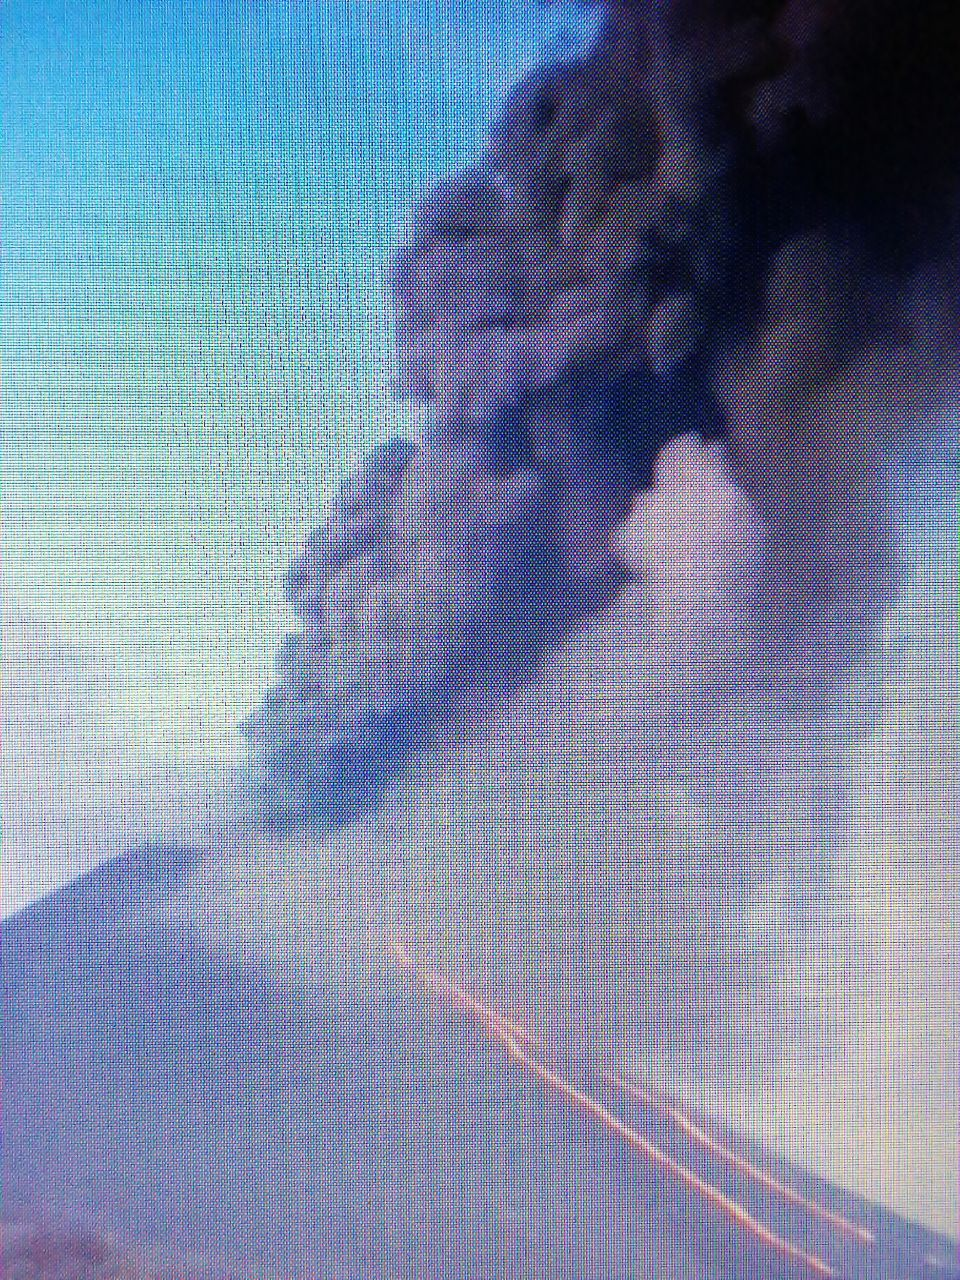 Pacaya - ash plume and lava flow on 03.13.2021 - Conred video screenshot